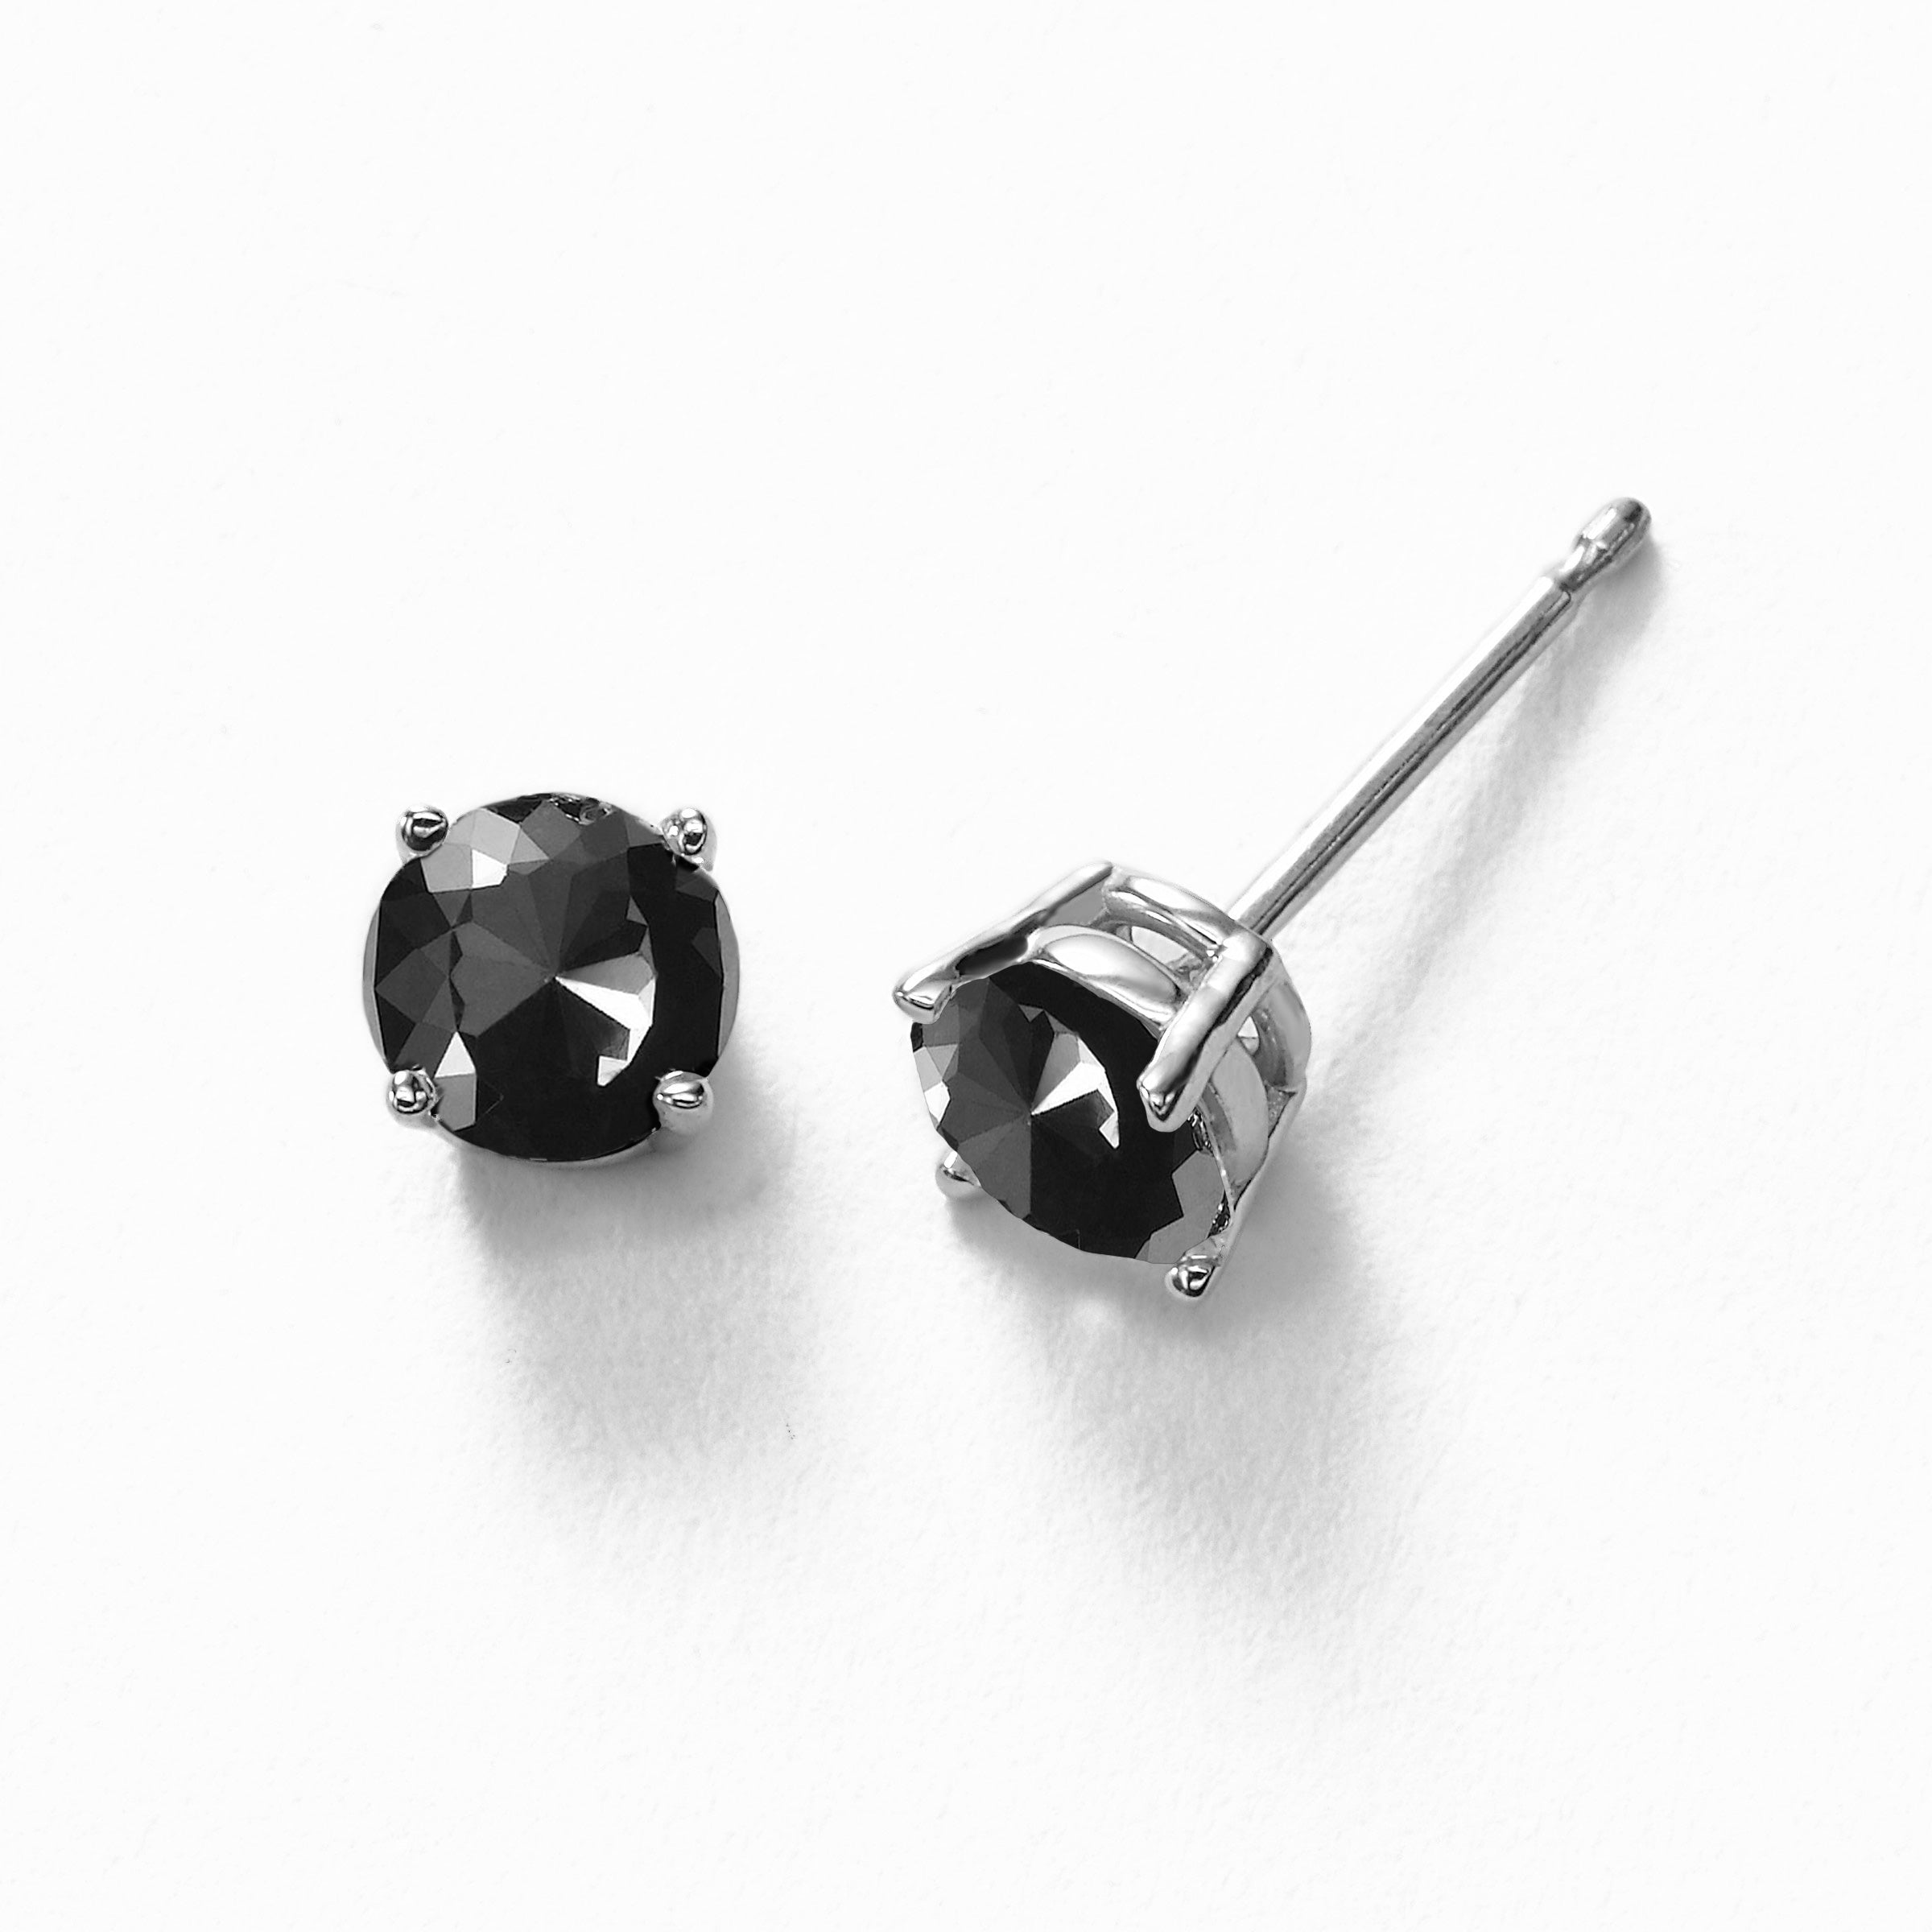 Black Diamond Stud Earrings, 5 MM, 1.00 Carats, 14K White Gold